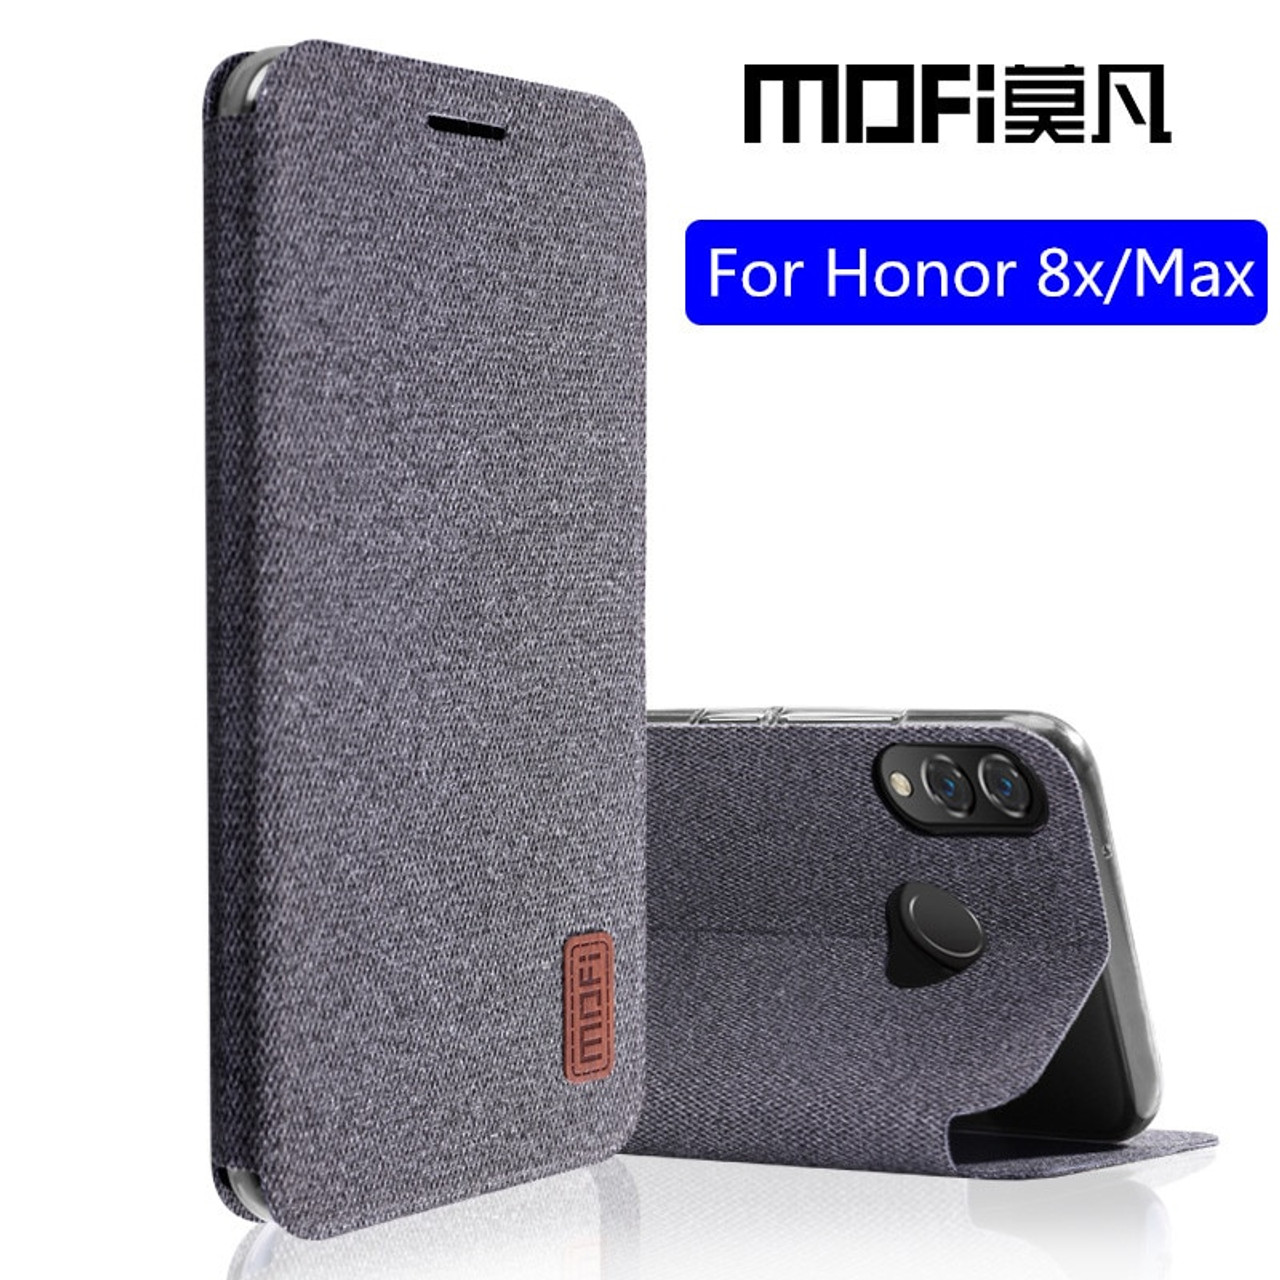 new style 3790c f6446 Huawei honor 8x max case honor8x flip cover silicone back coque shockproof  phone case fundas MOFi original honor 8x case